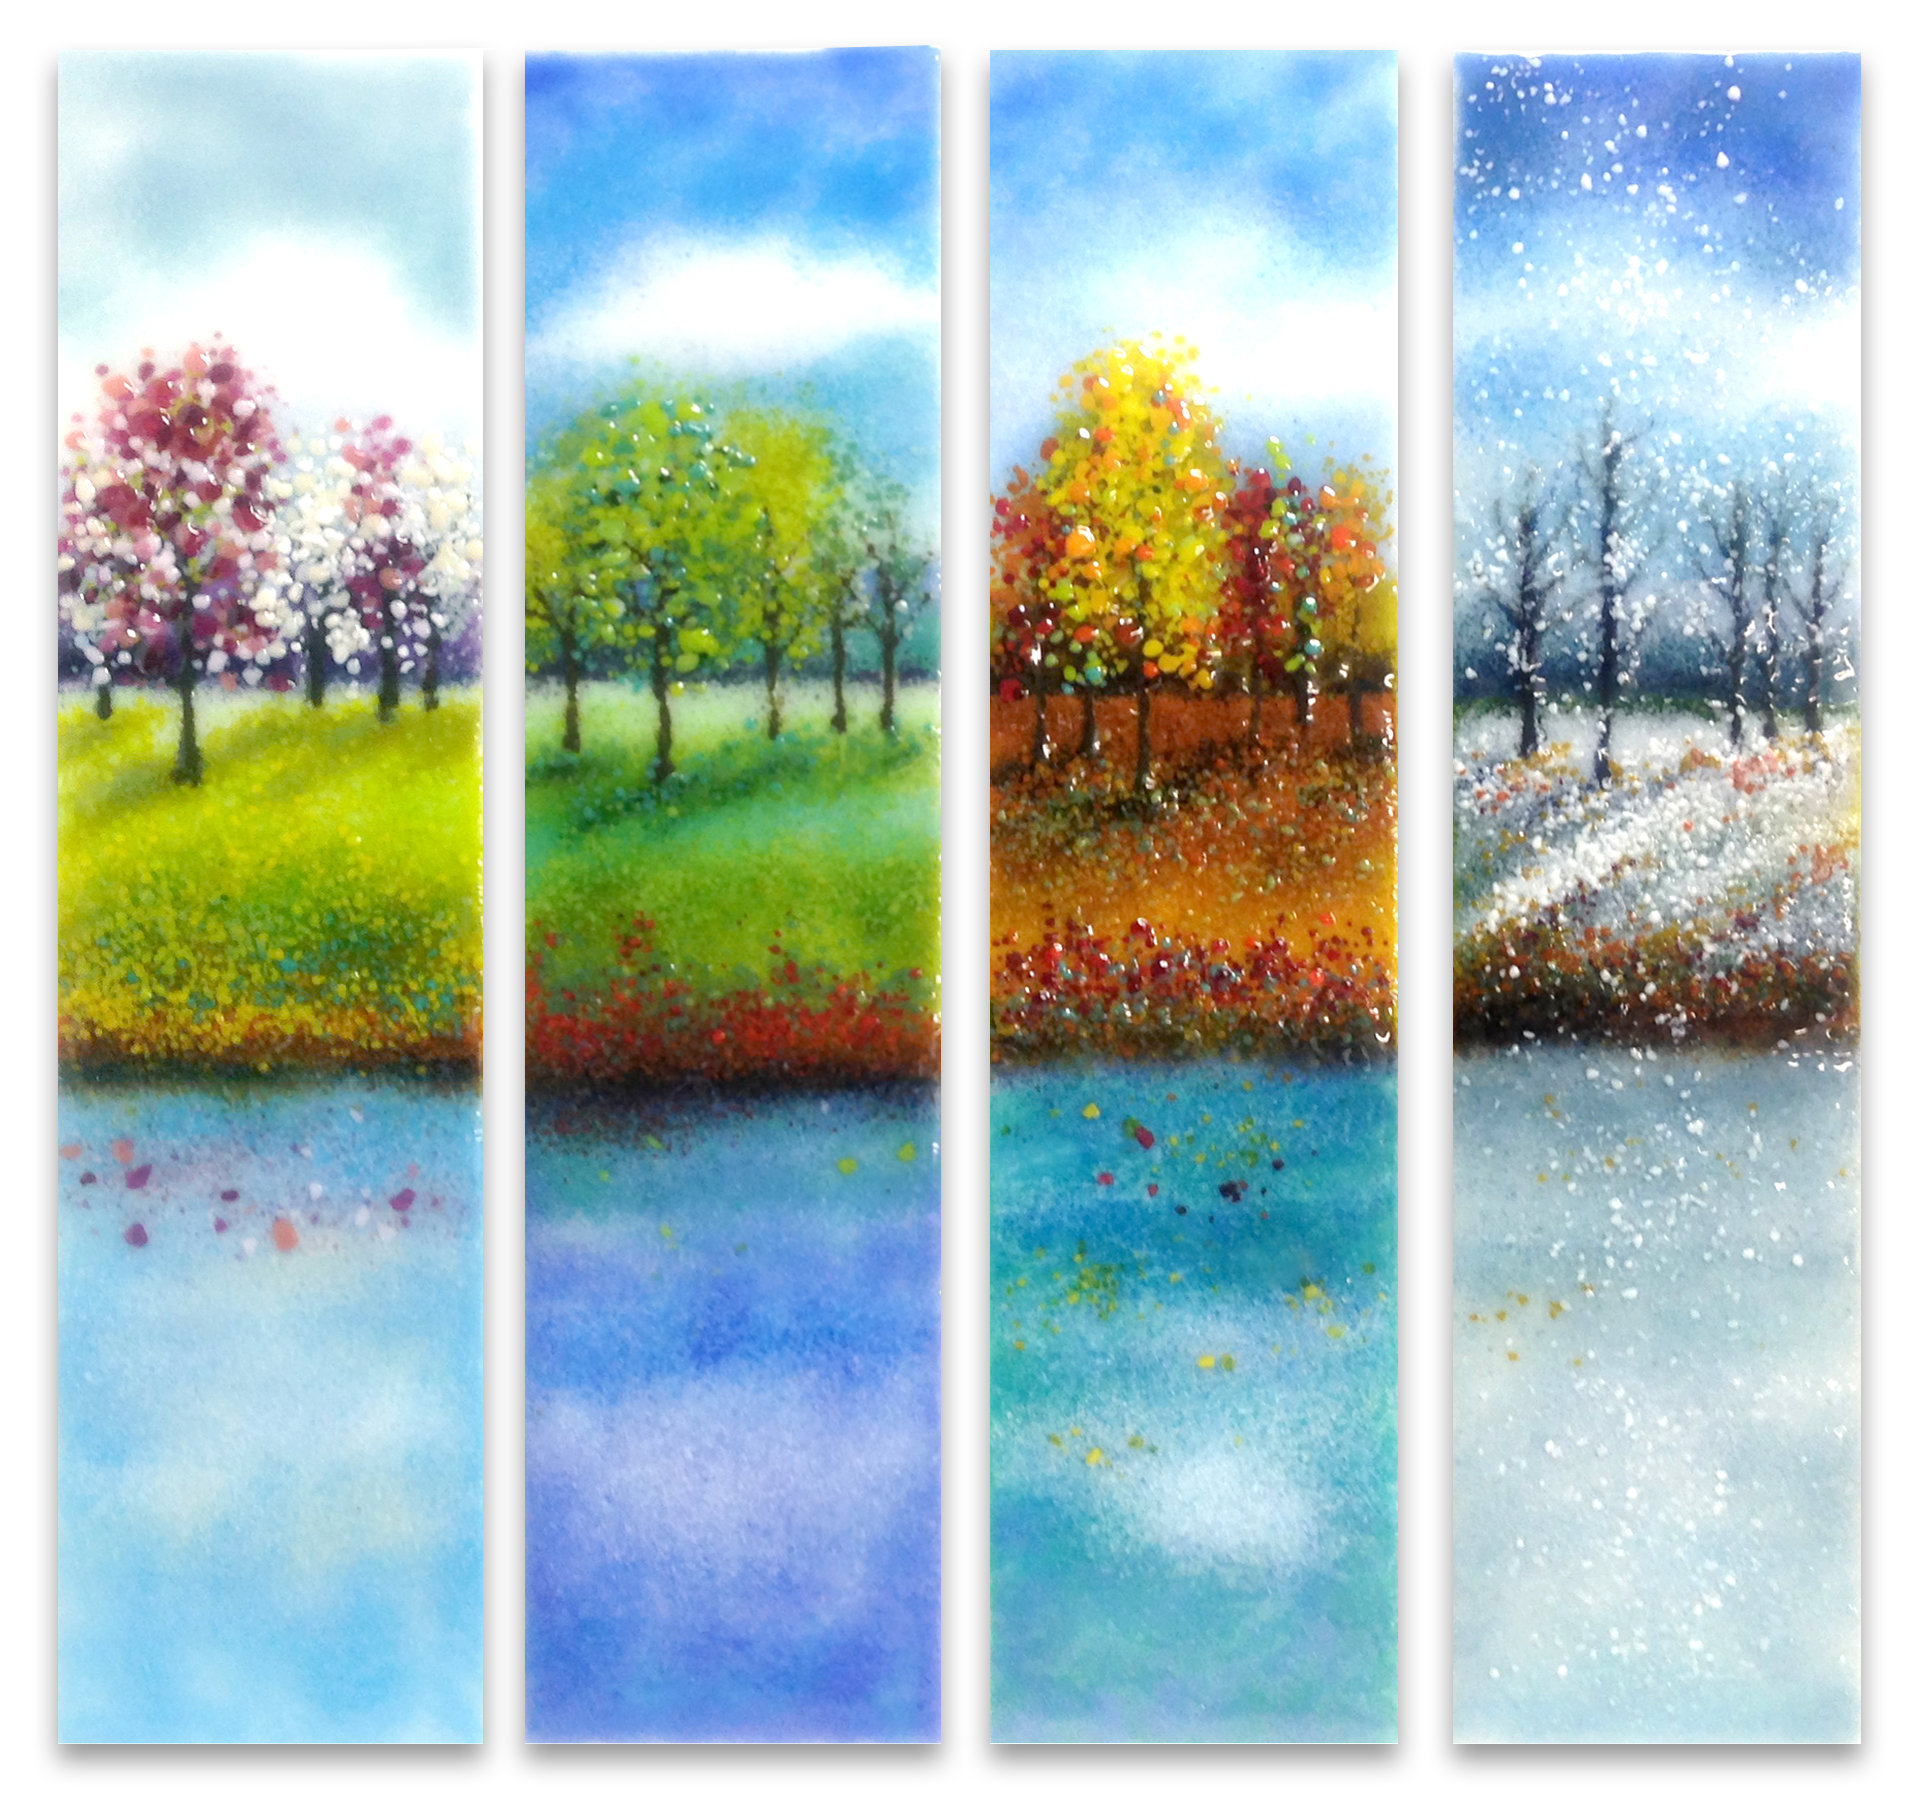 Four seasons glass wall art by anne nye art glass wall for Large glass wall